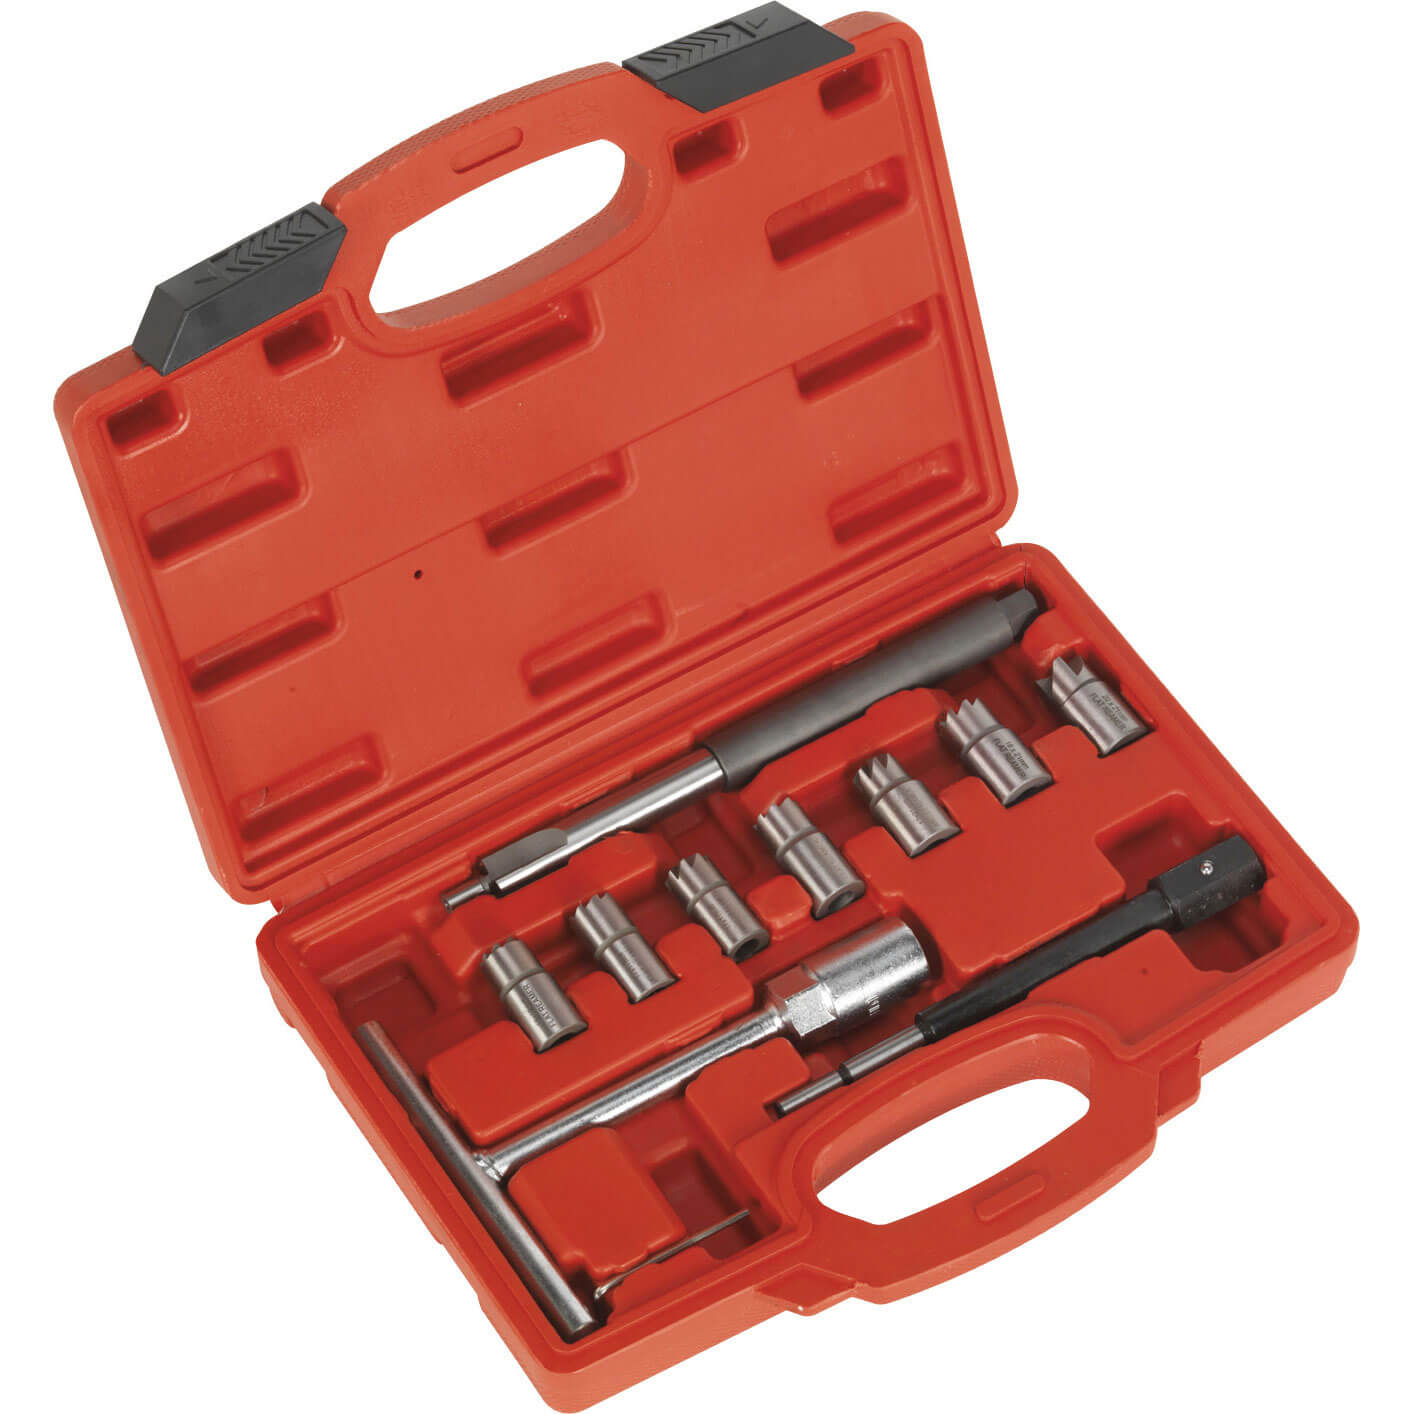 Image of Sealey 6 Piece Diesel Injector Seat Cleaner Set